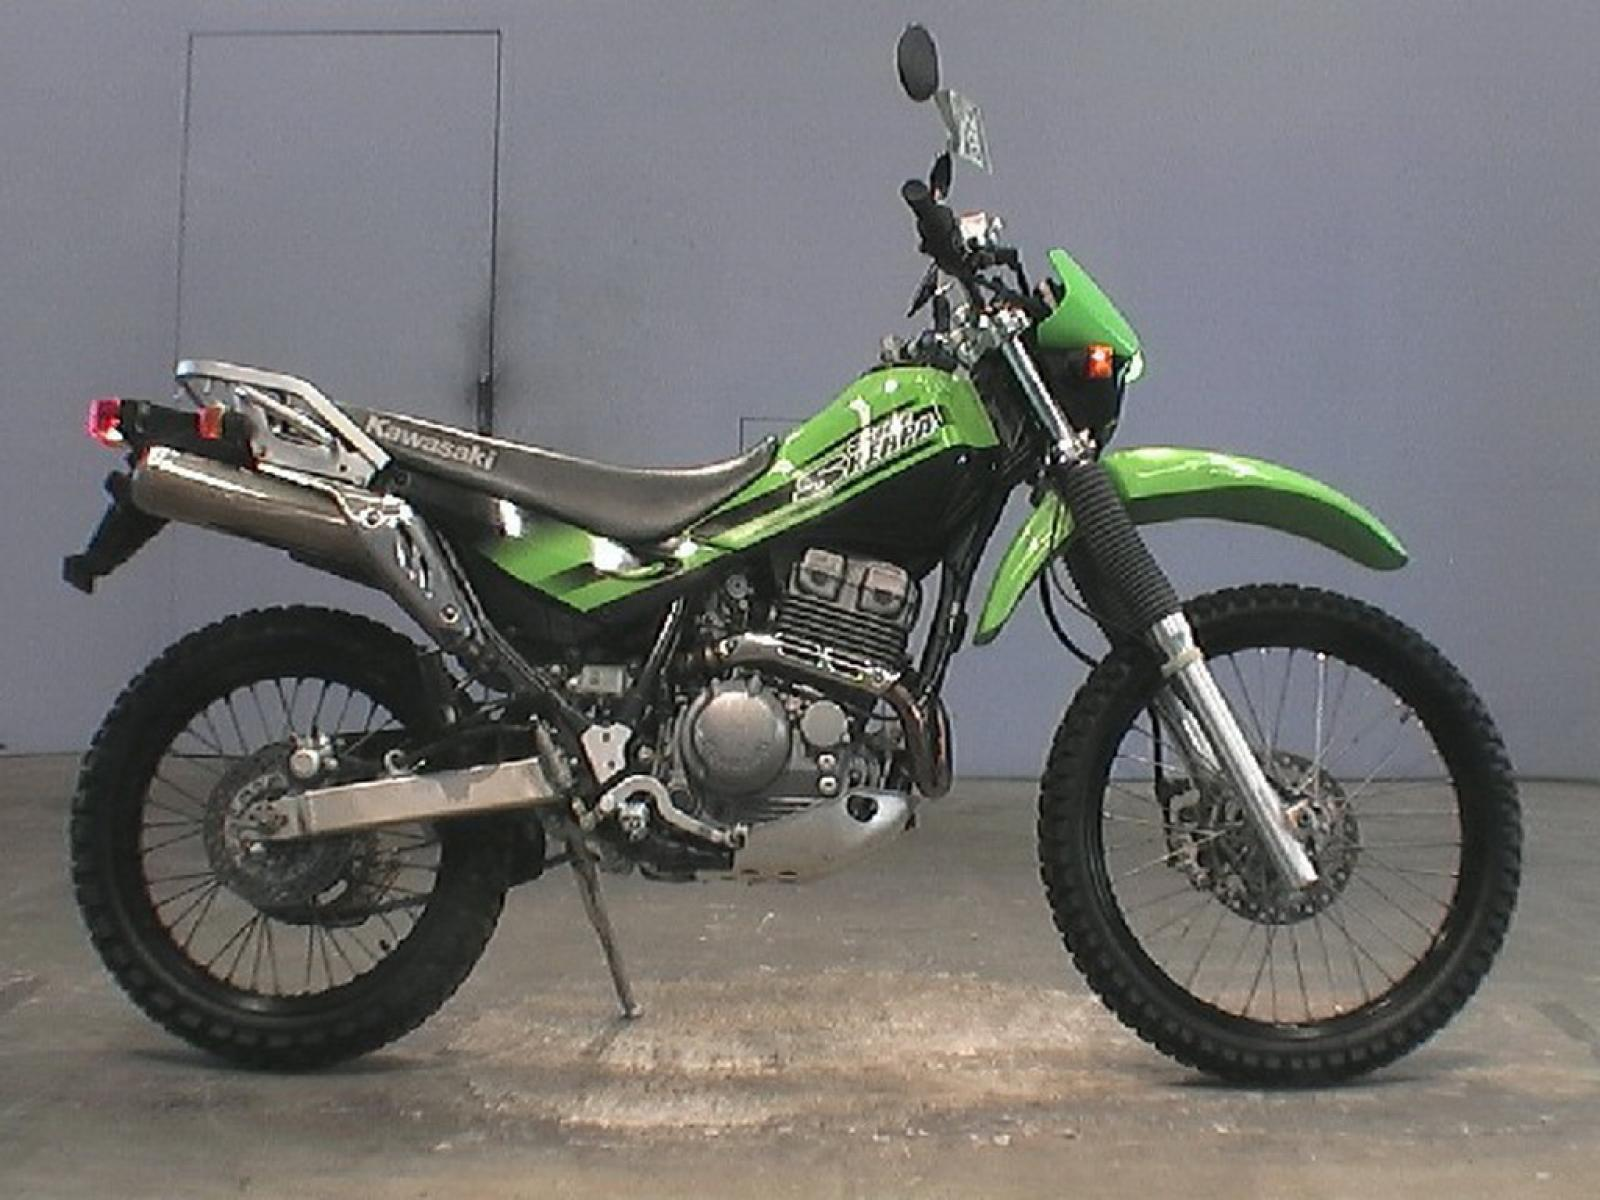 Kawasaki super photo - 8